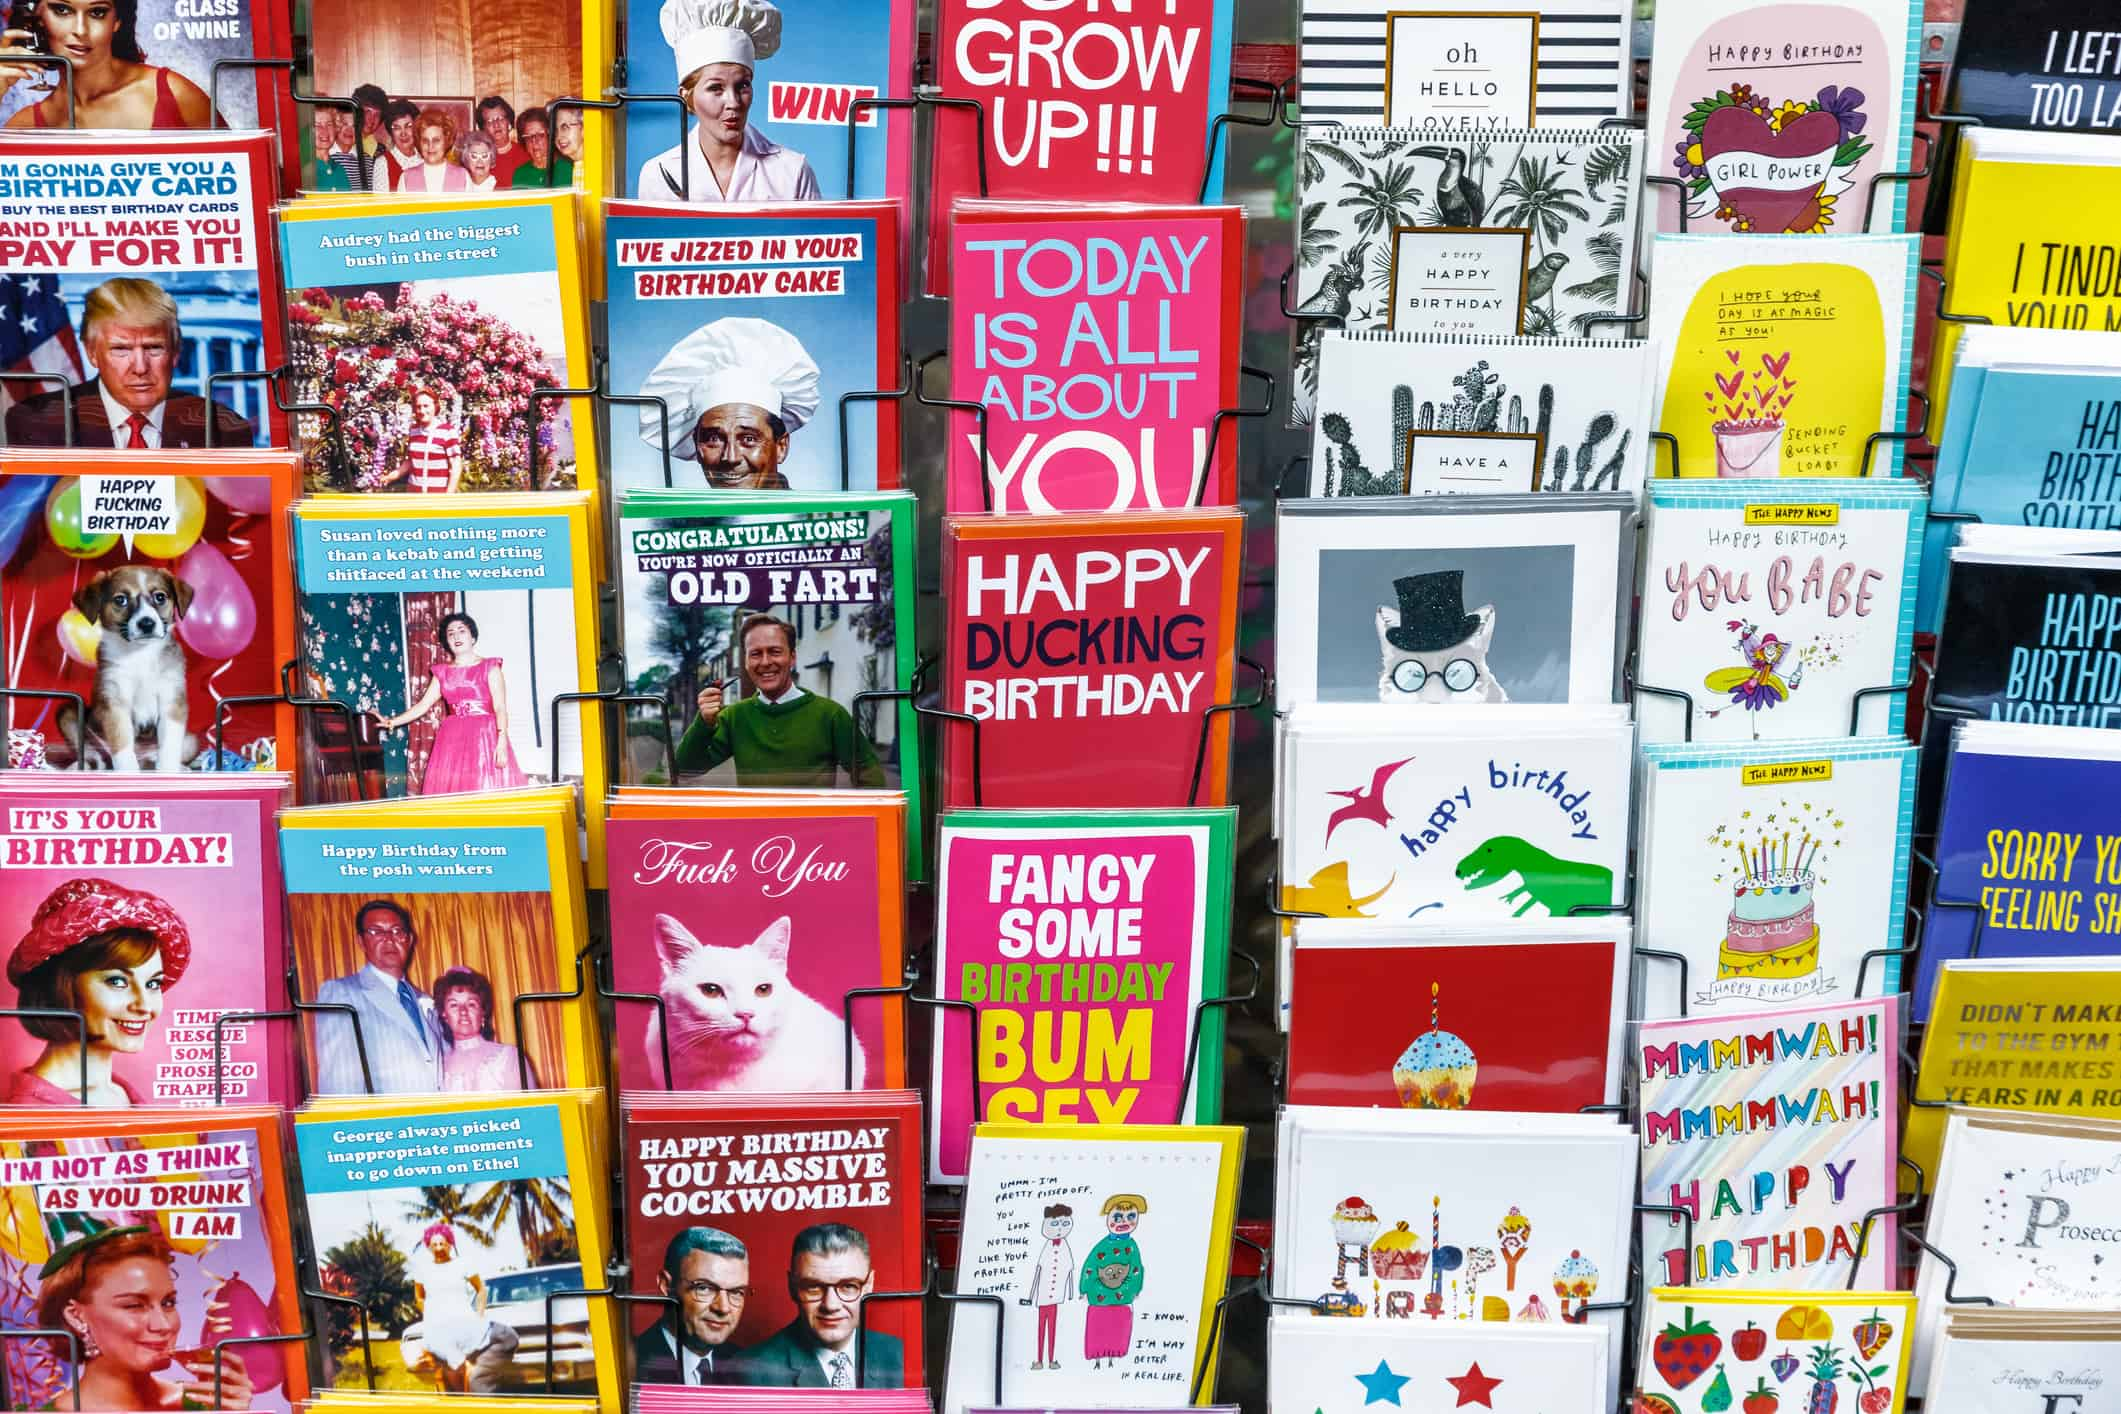 Quirky And Cheap Birthday Cards On Display At Grocery Store